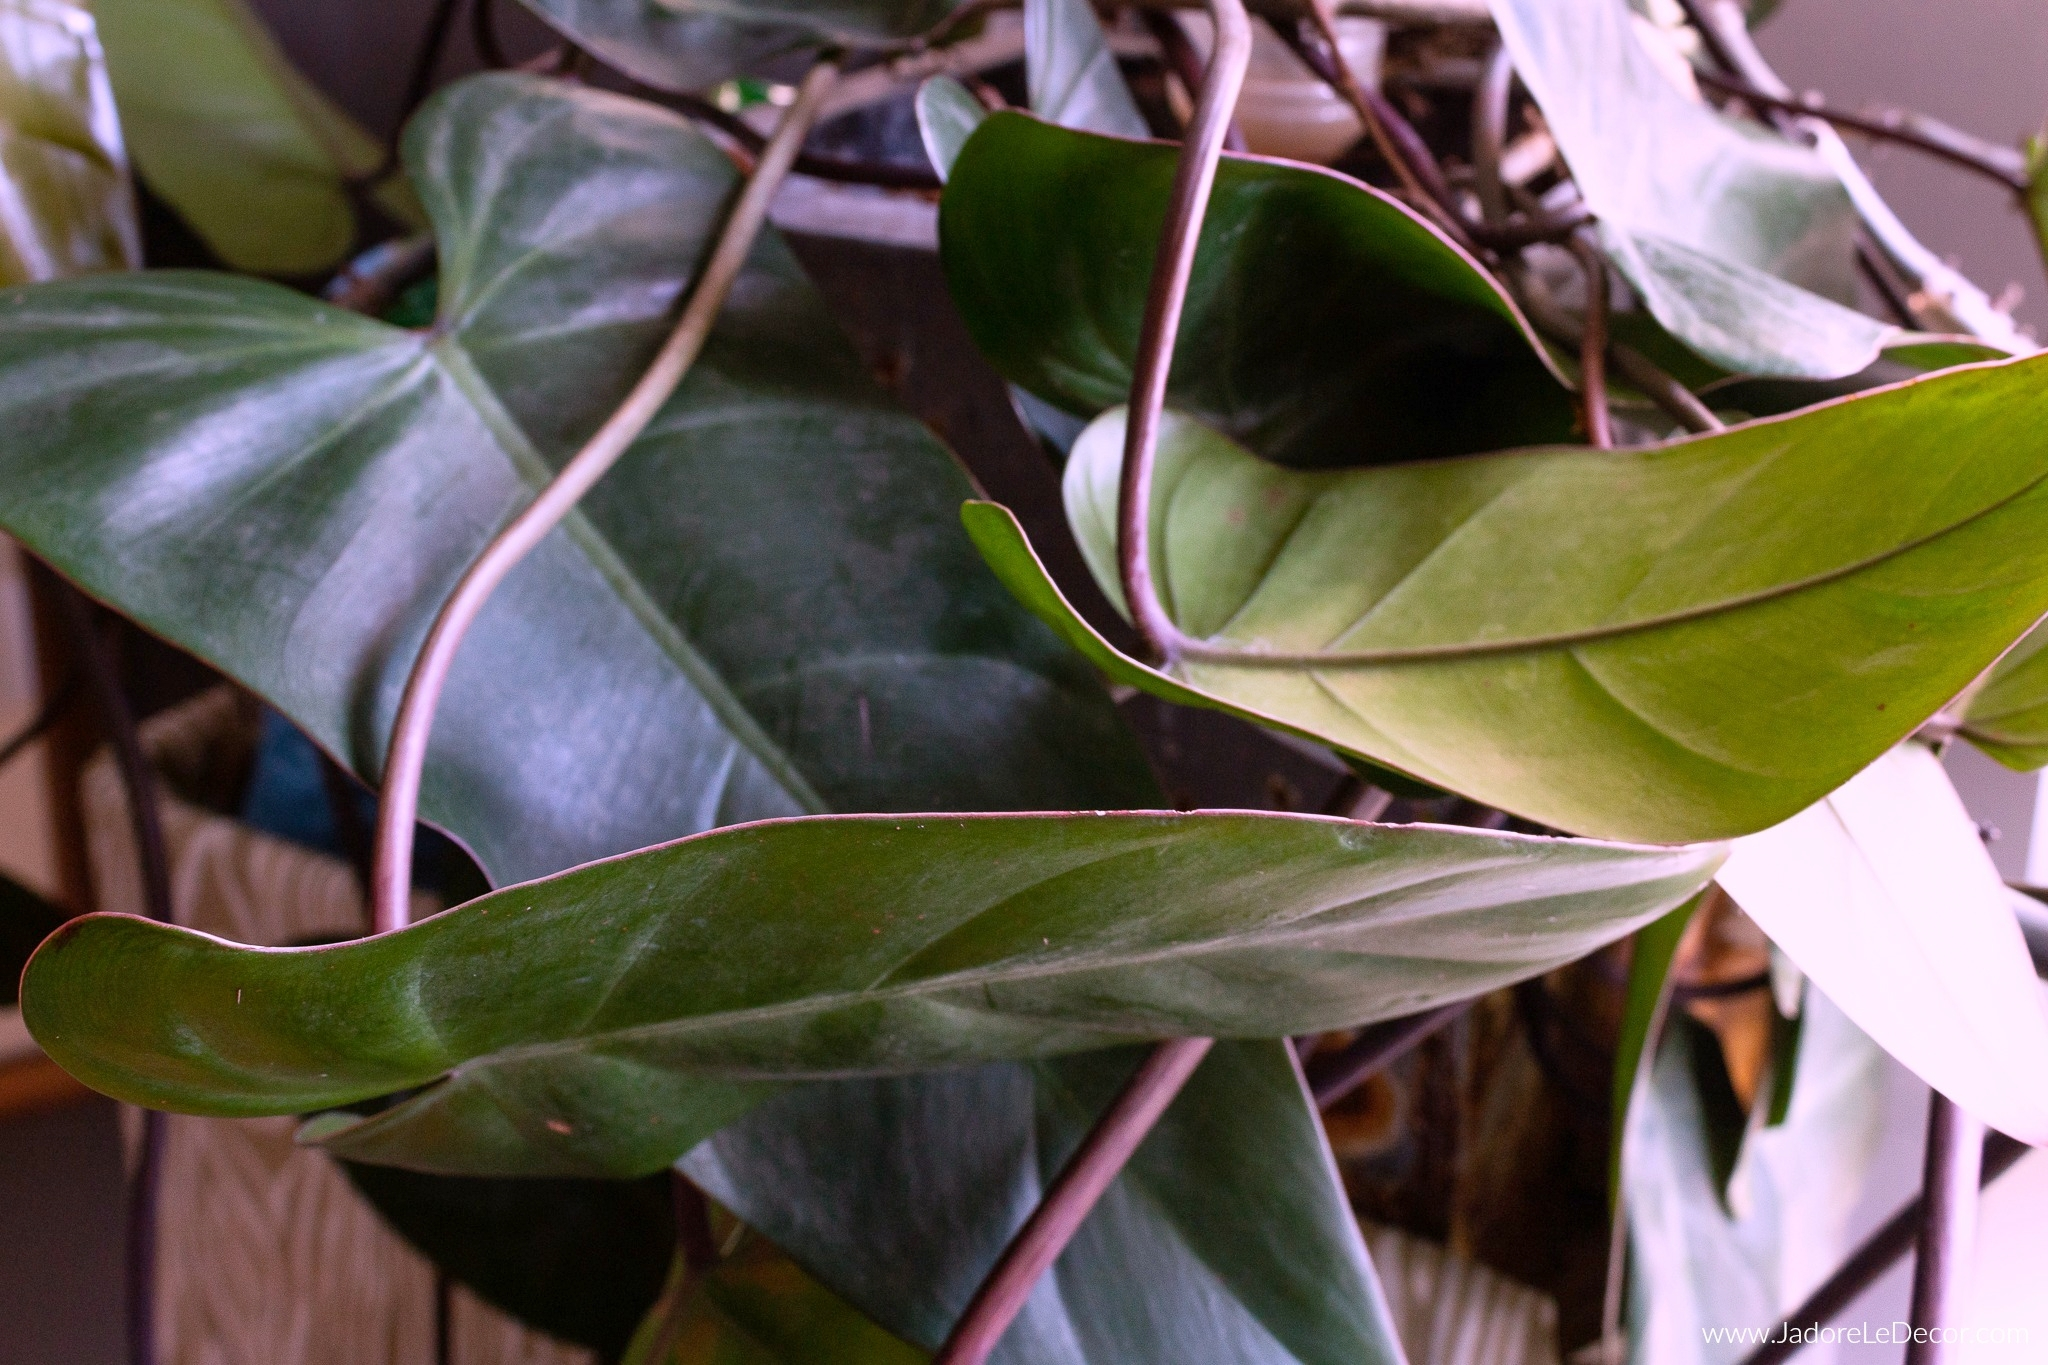 www.JadoreleDecor.com | Proven tips that will help you keep your houseplants thriving.